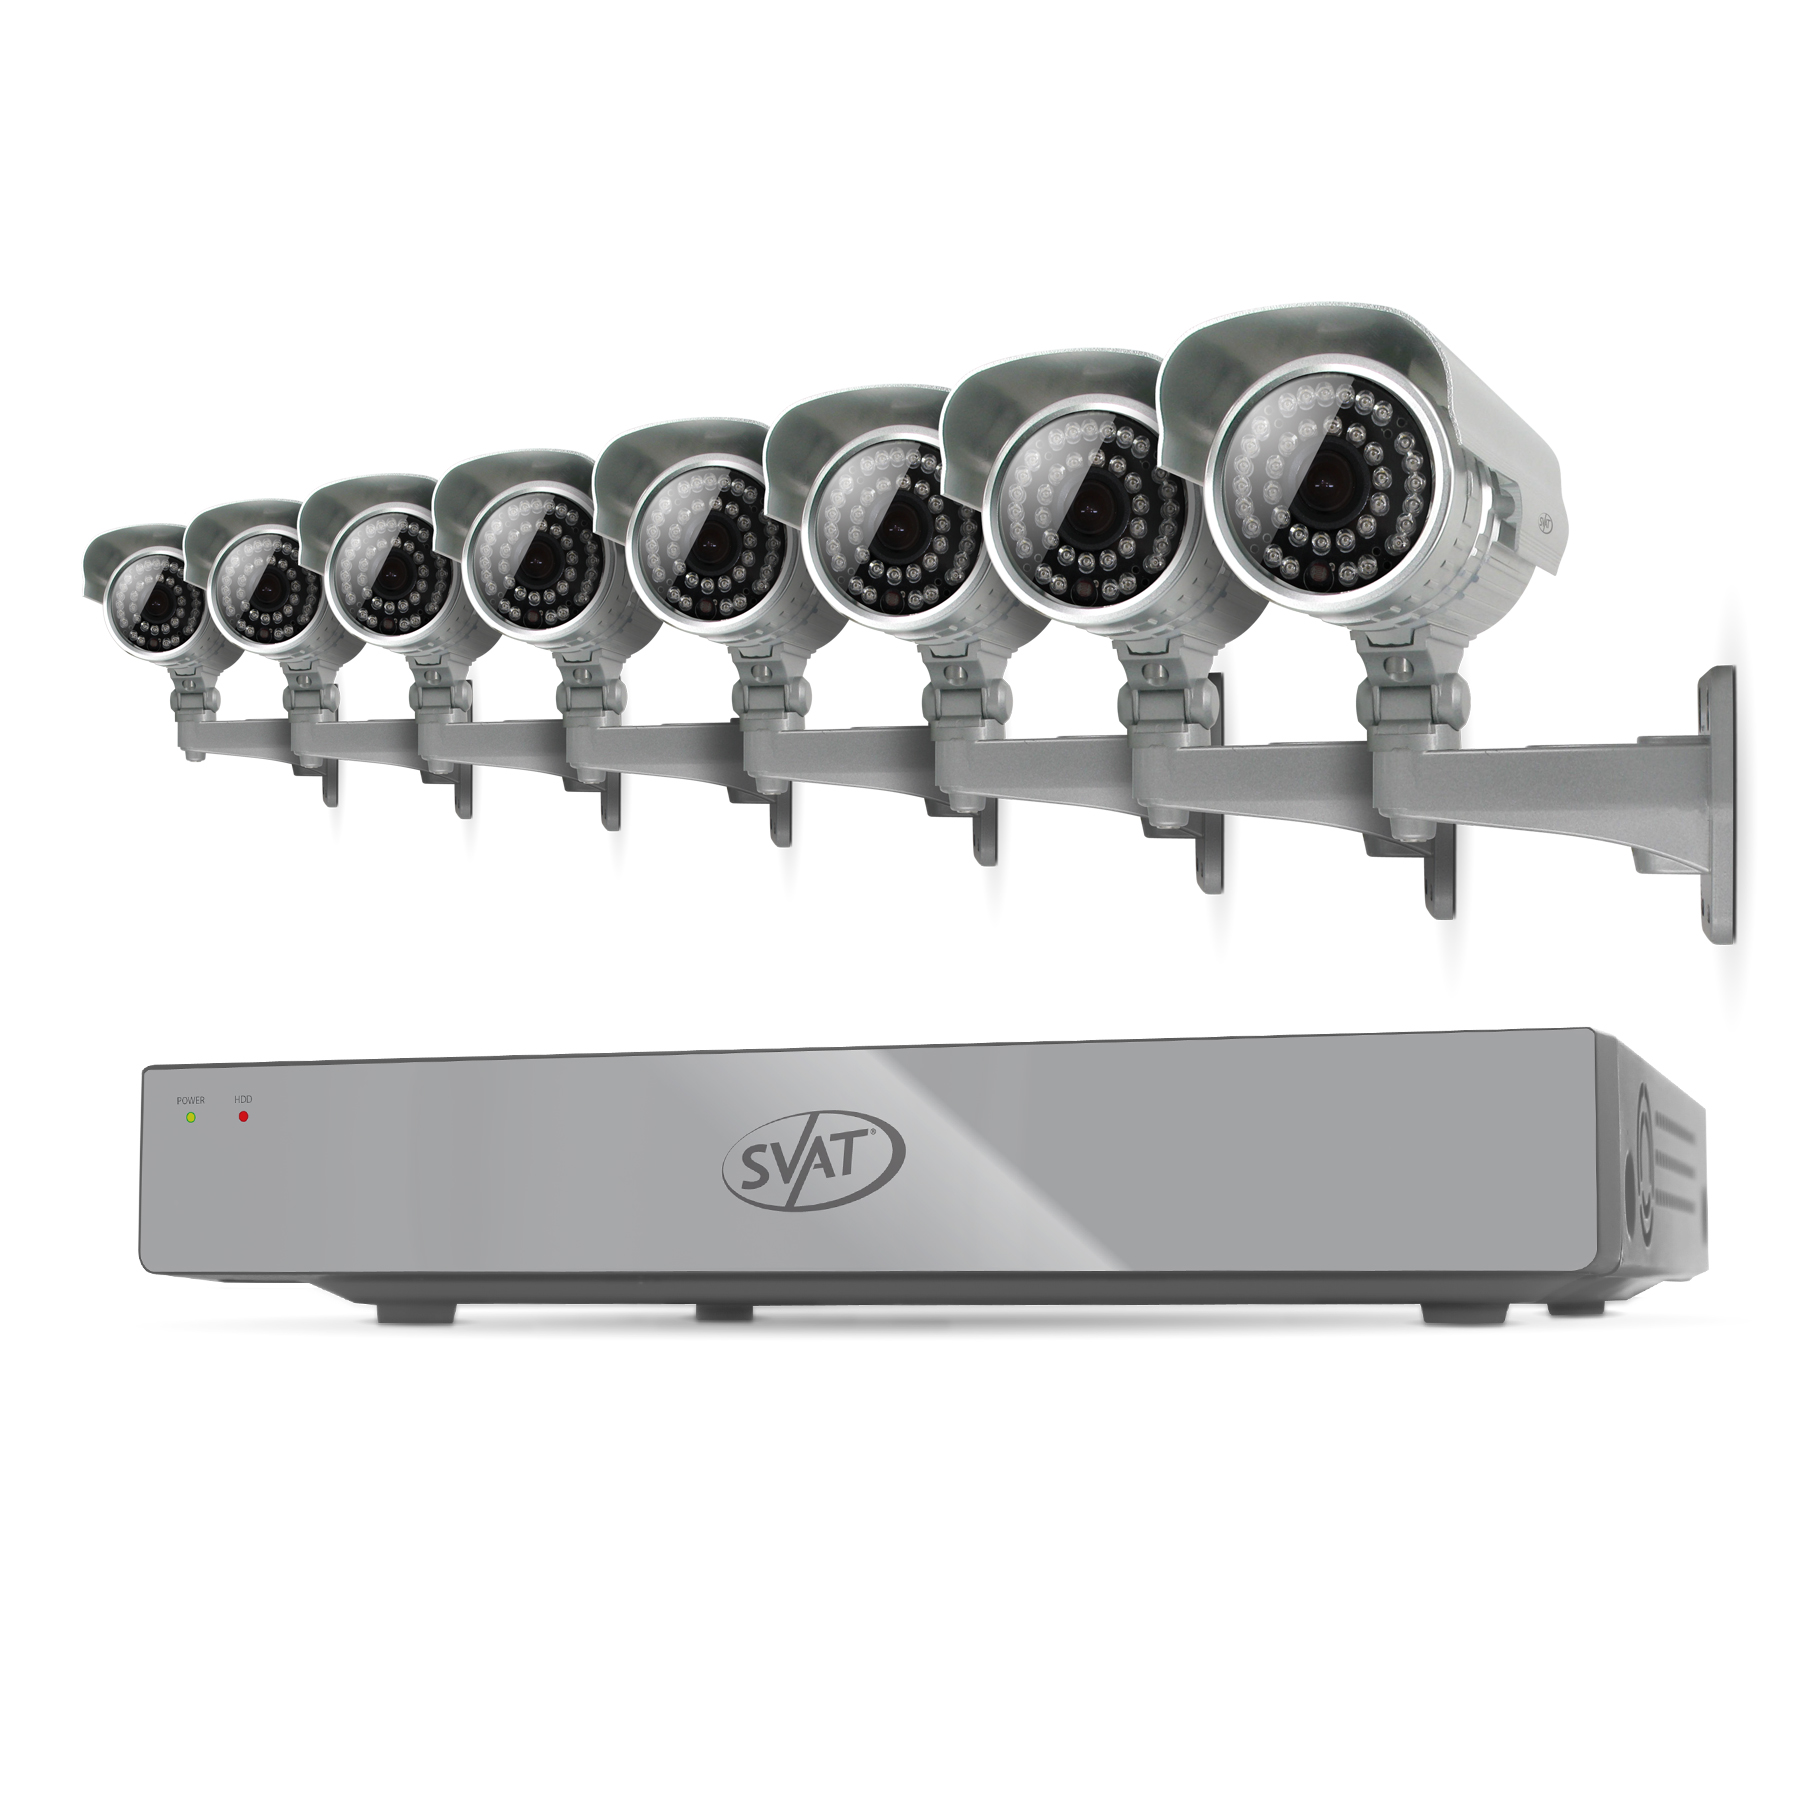 11025 - SVAT 8CH Smart Security DVR w/ 8 Hi-Res 100ft Cameras w/ IR Cut Filter 500GB HDD